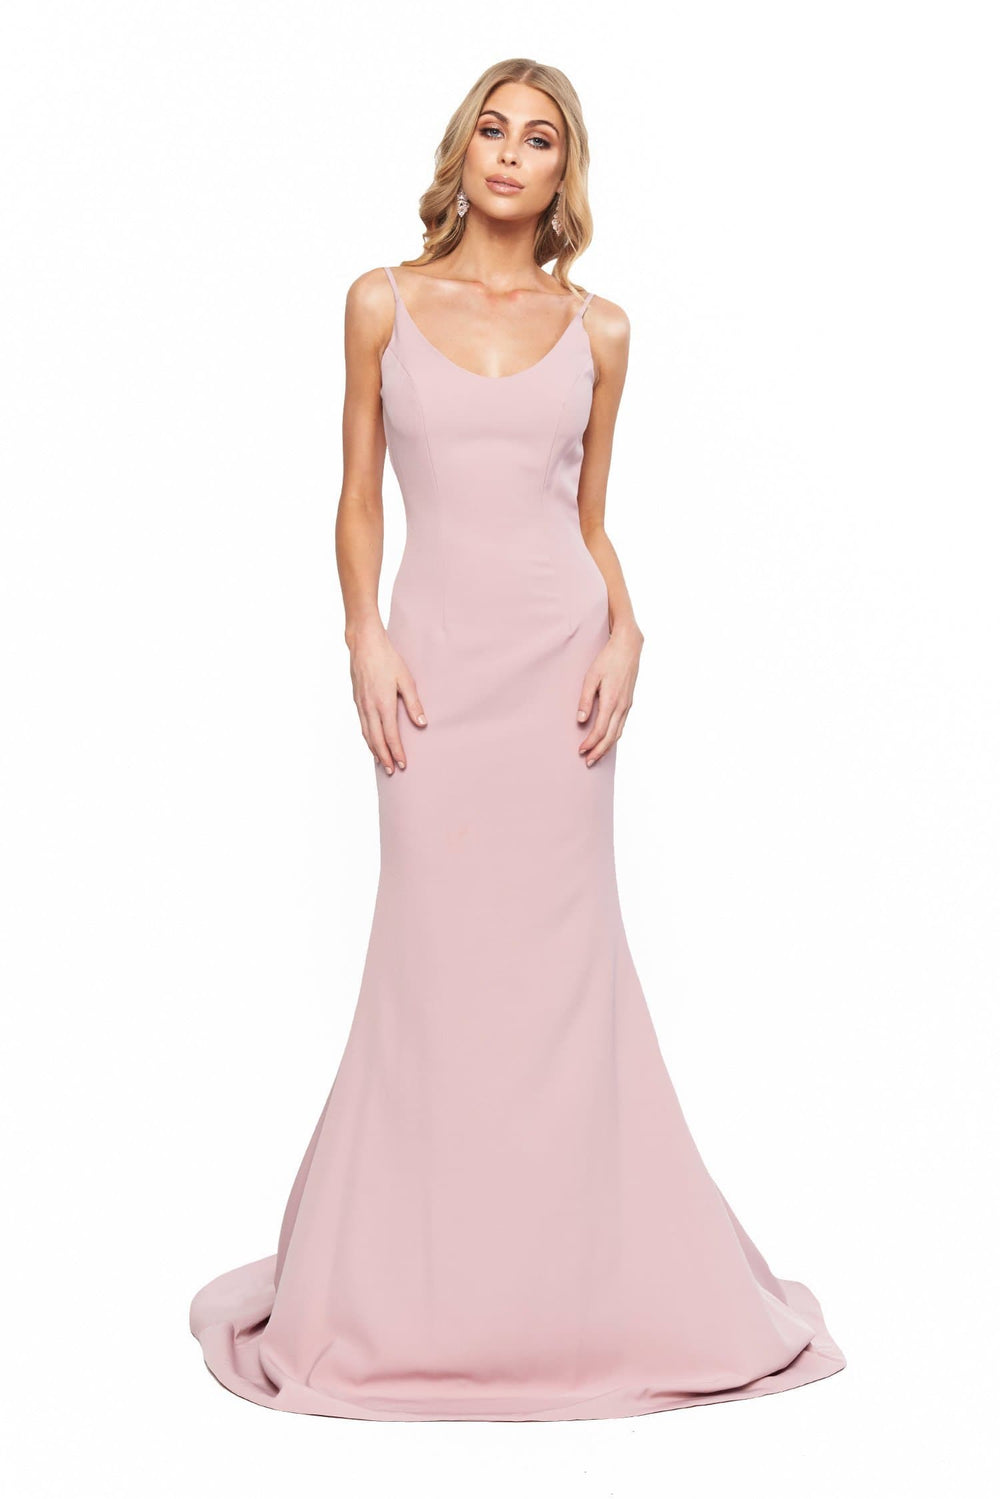 A&N Bridesmaids Isabella Scoop Neck Low Back Gown - Mauve